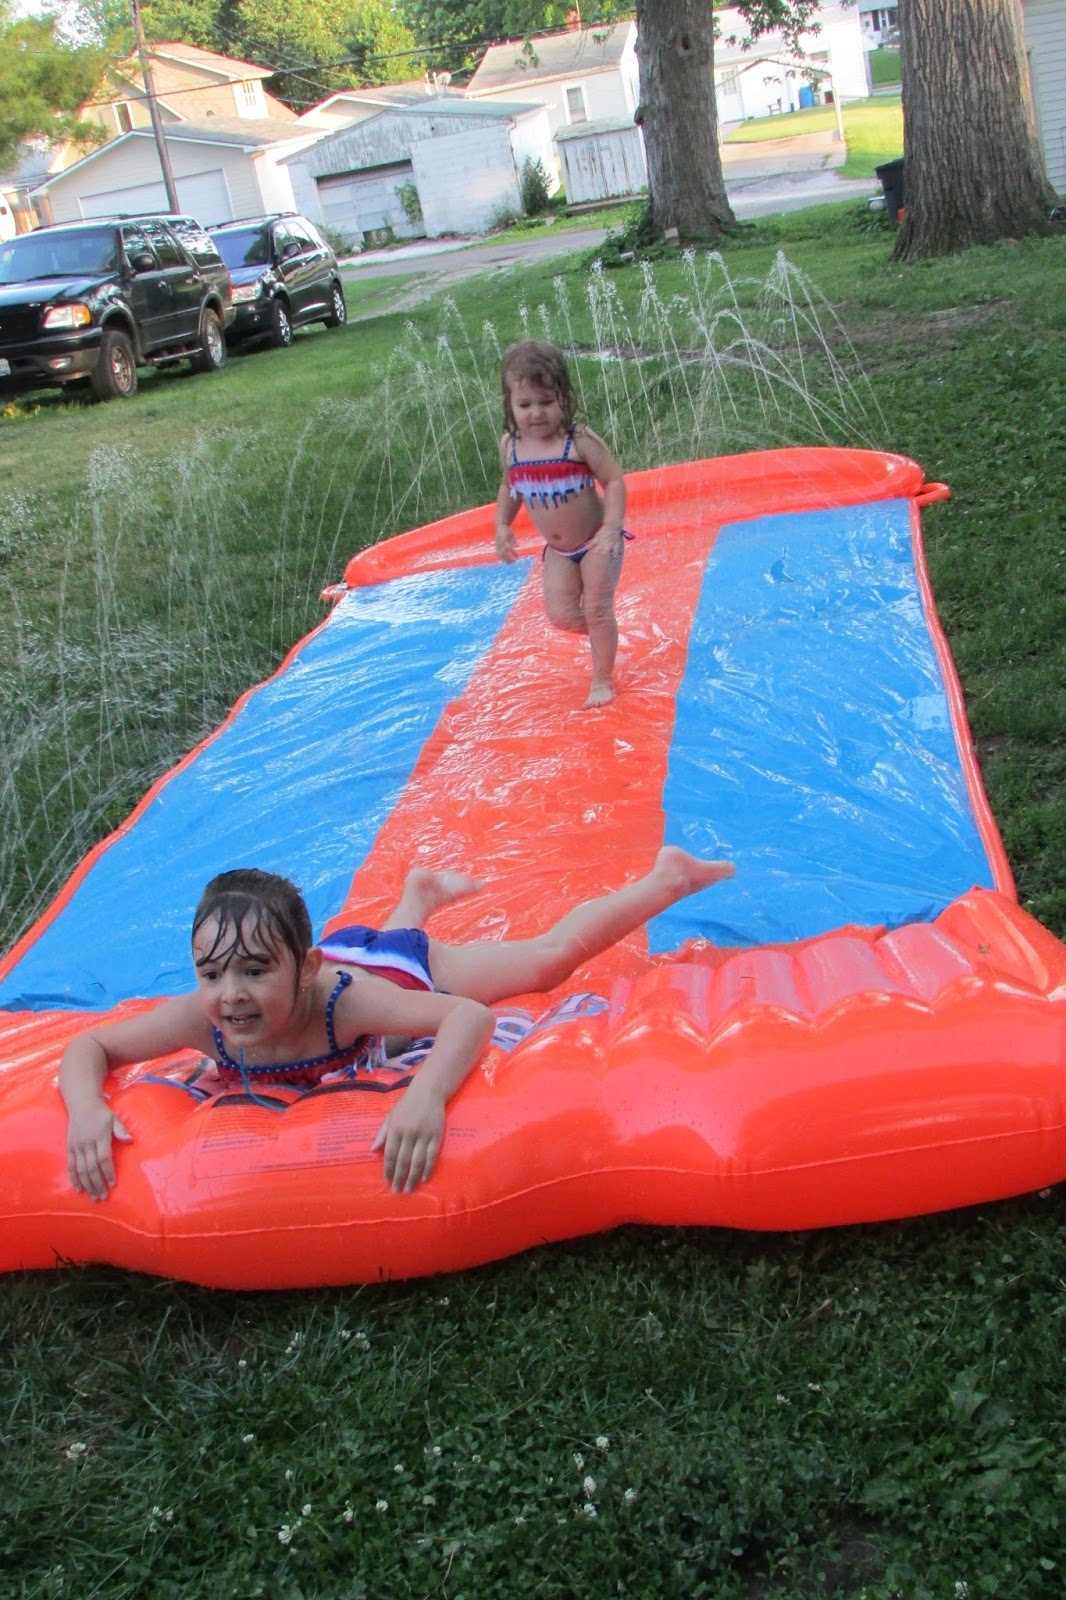 Heck Of A Bunch: H20GO! Backyard Water Slide - Review